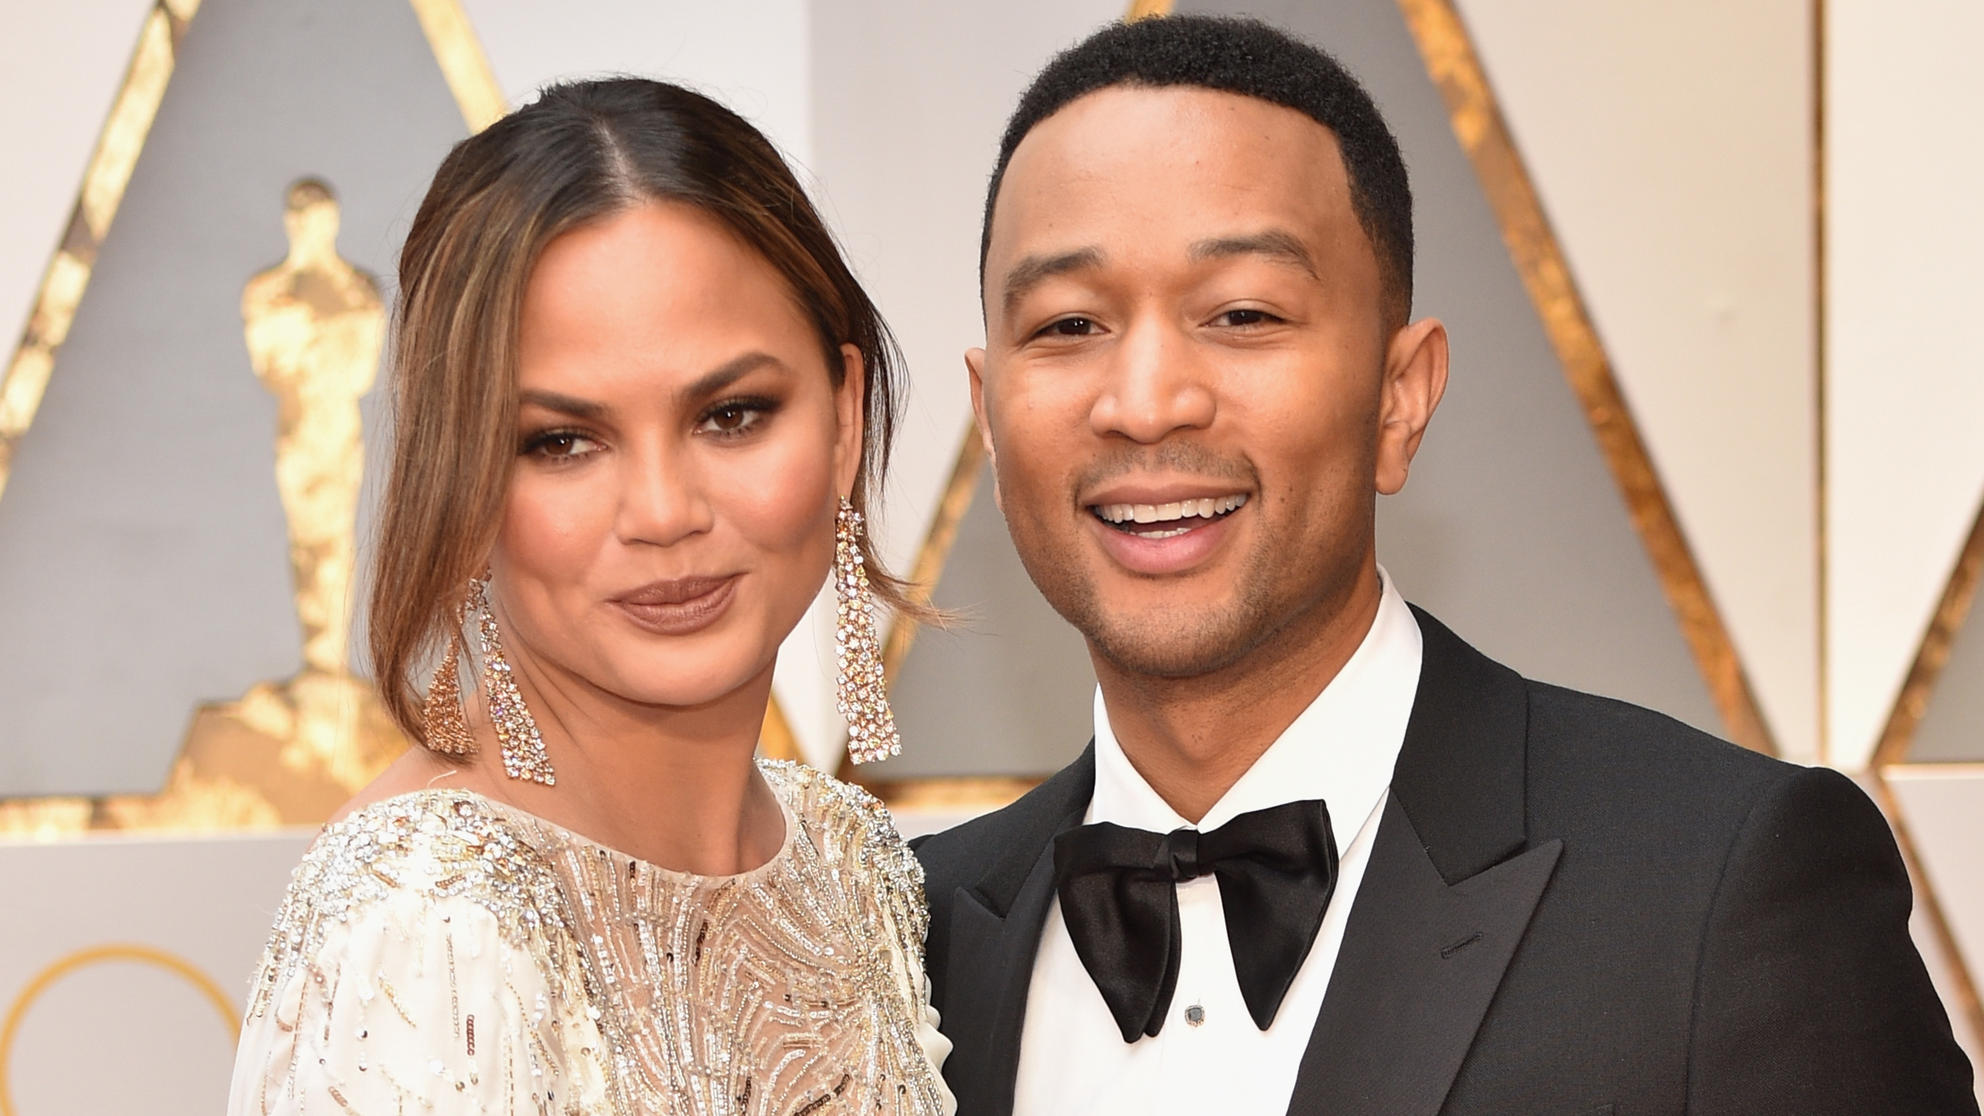 john-legend-chrissy-teigen-award-show